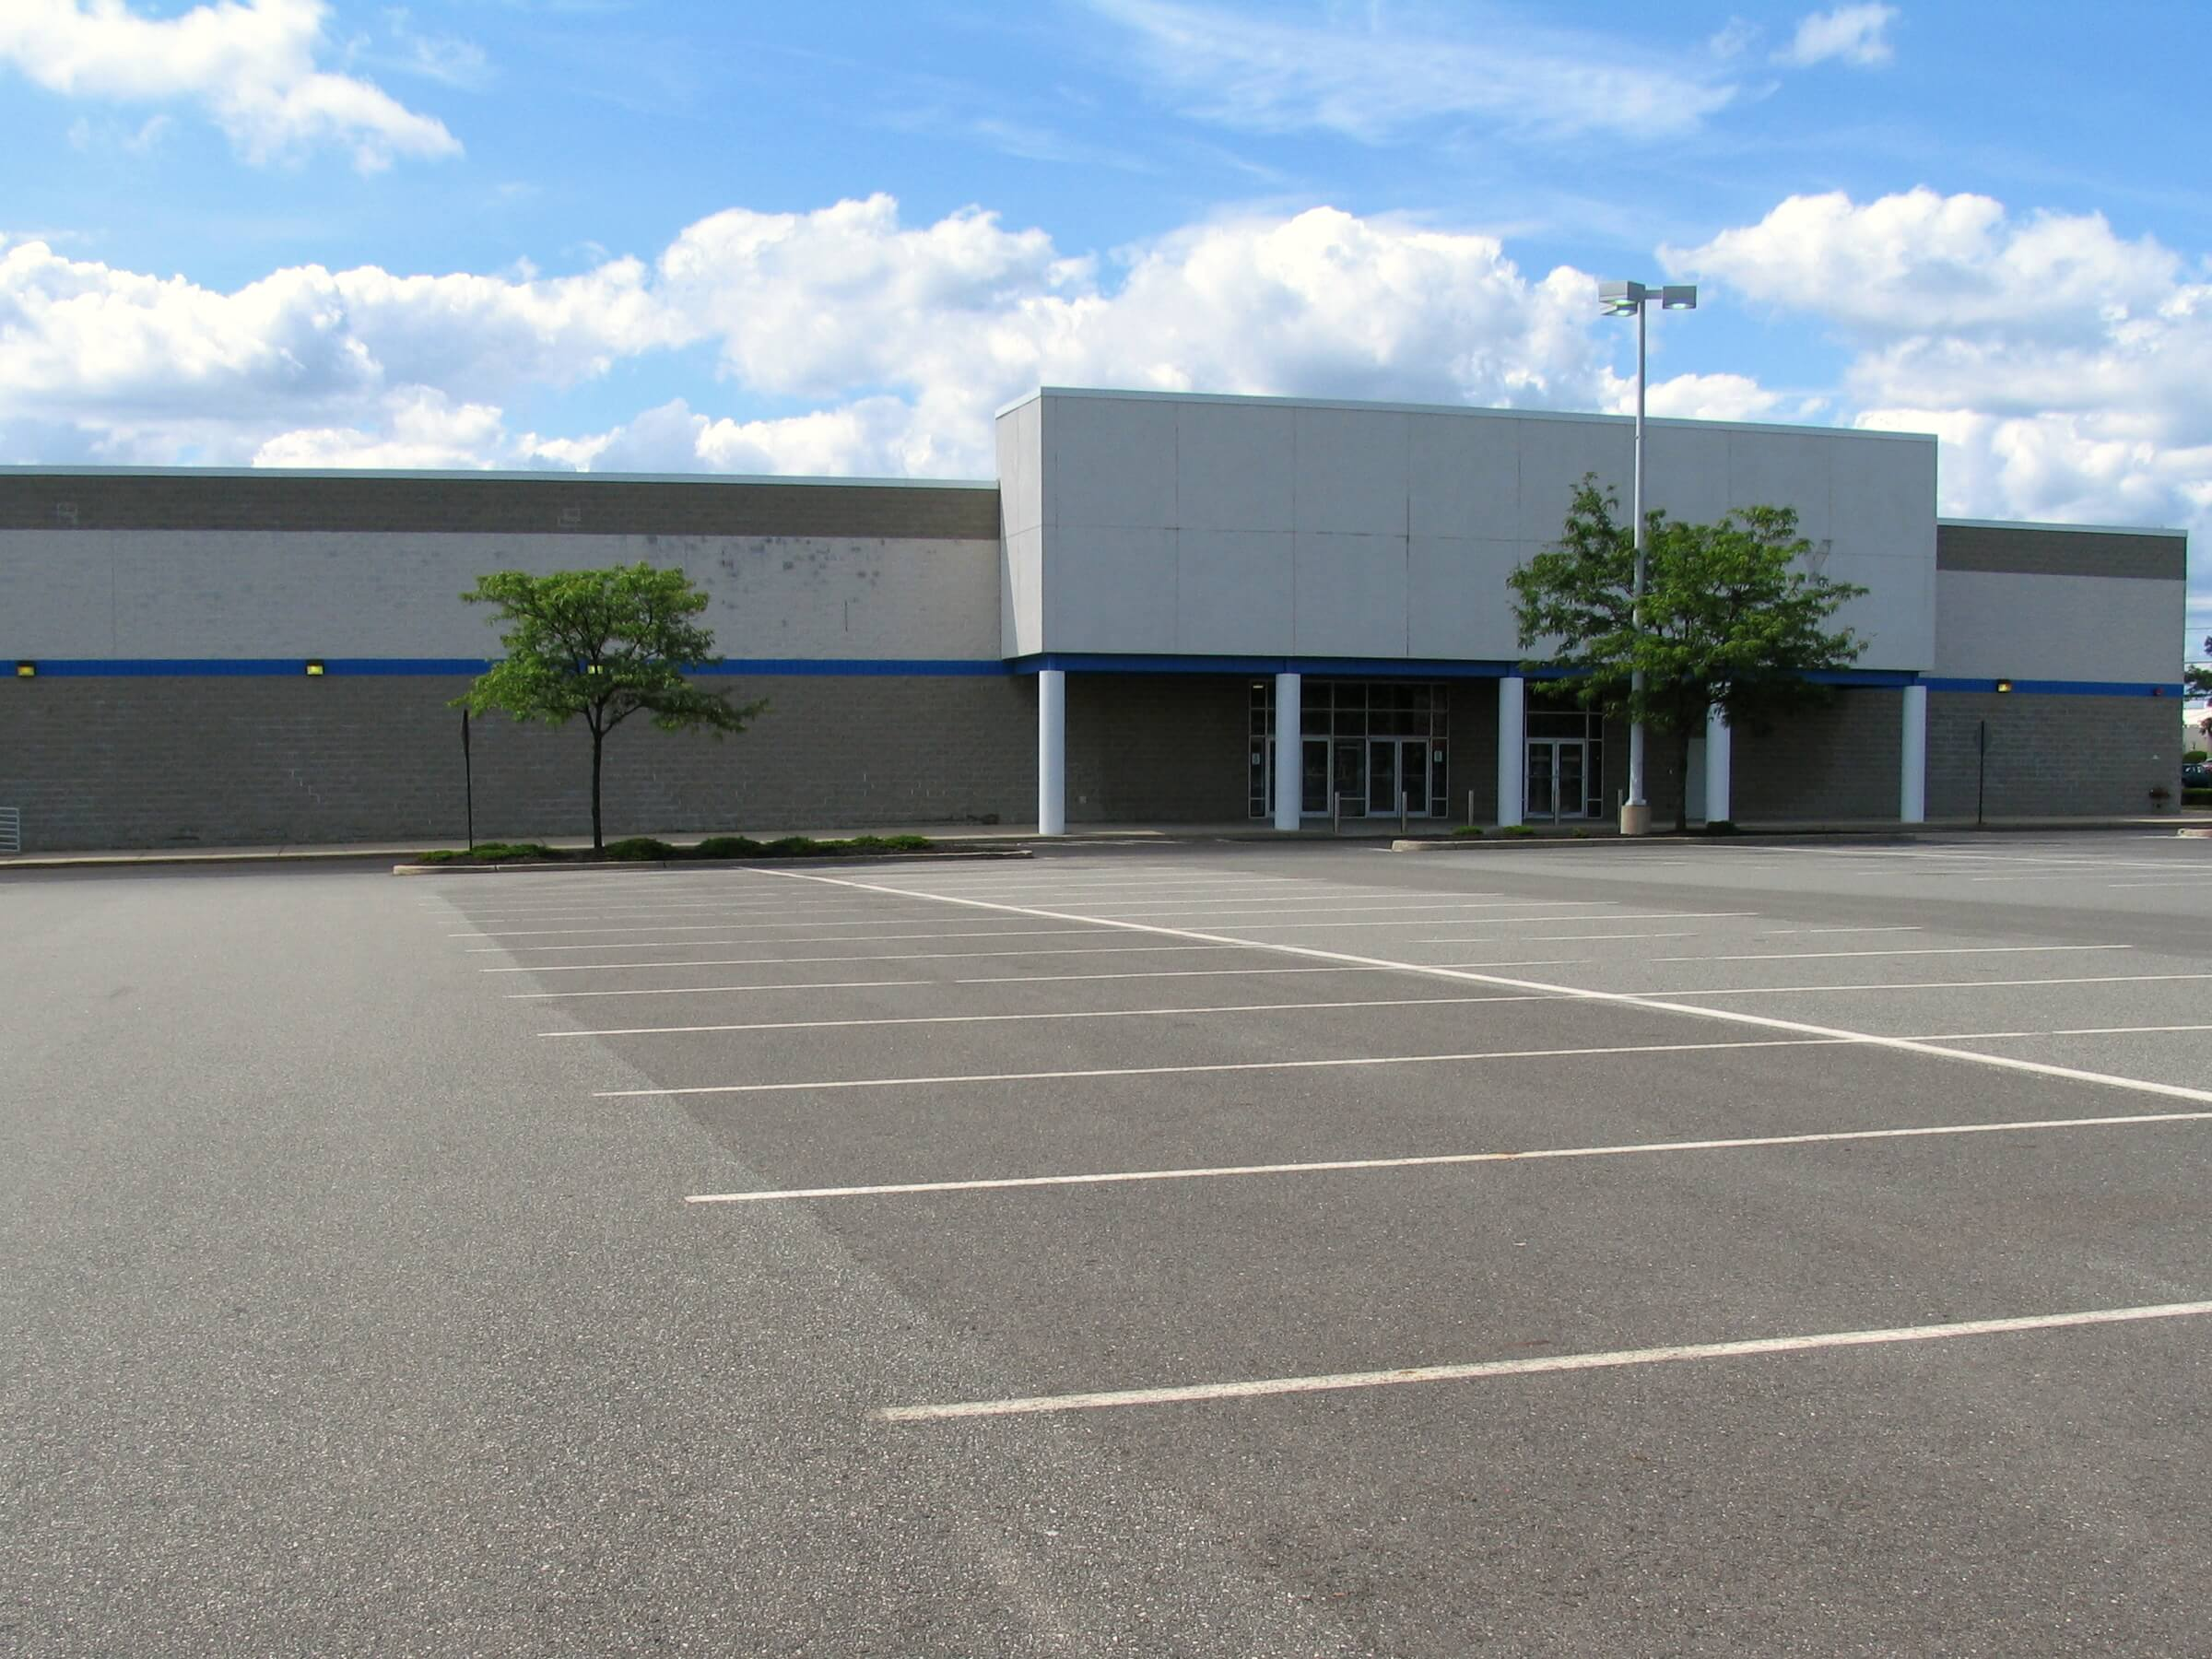 Asphalt Parking Lot Paving & Maintenance in Rockville, MD